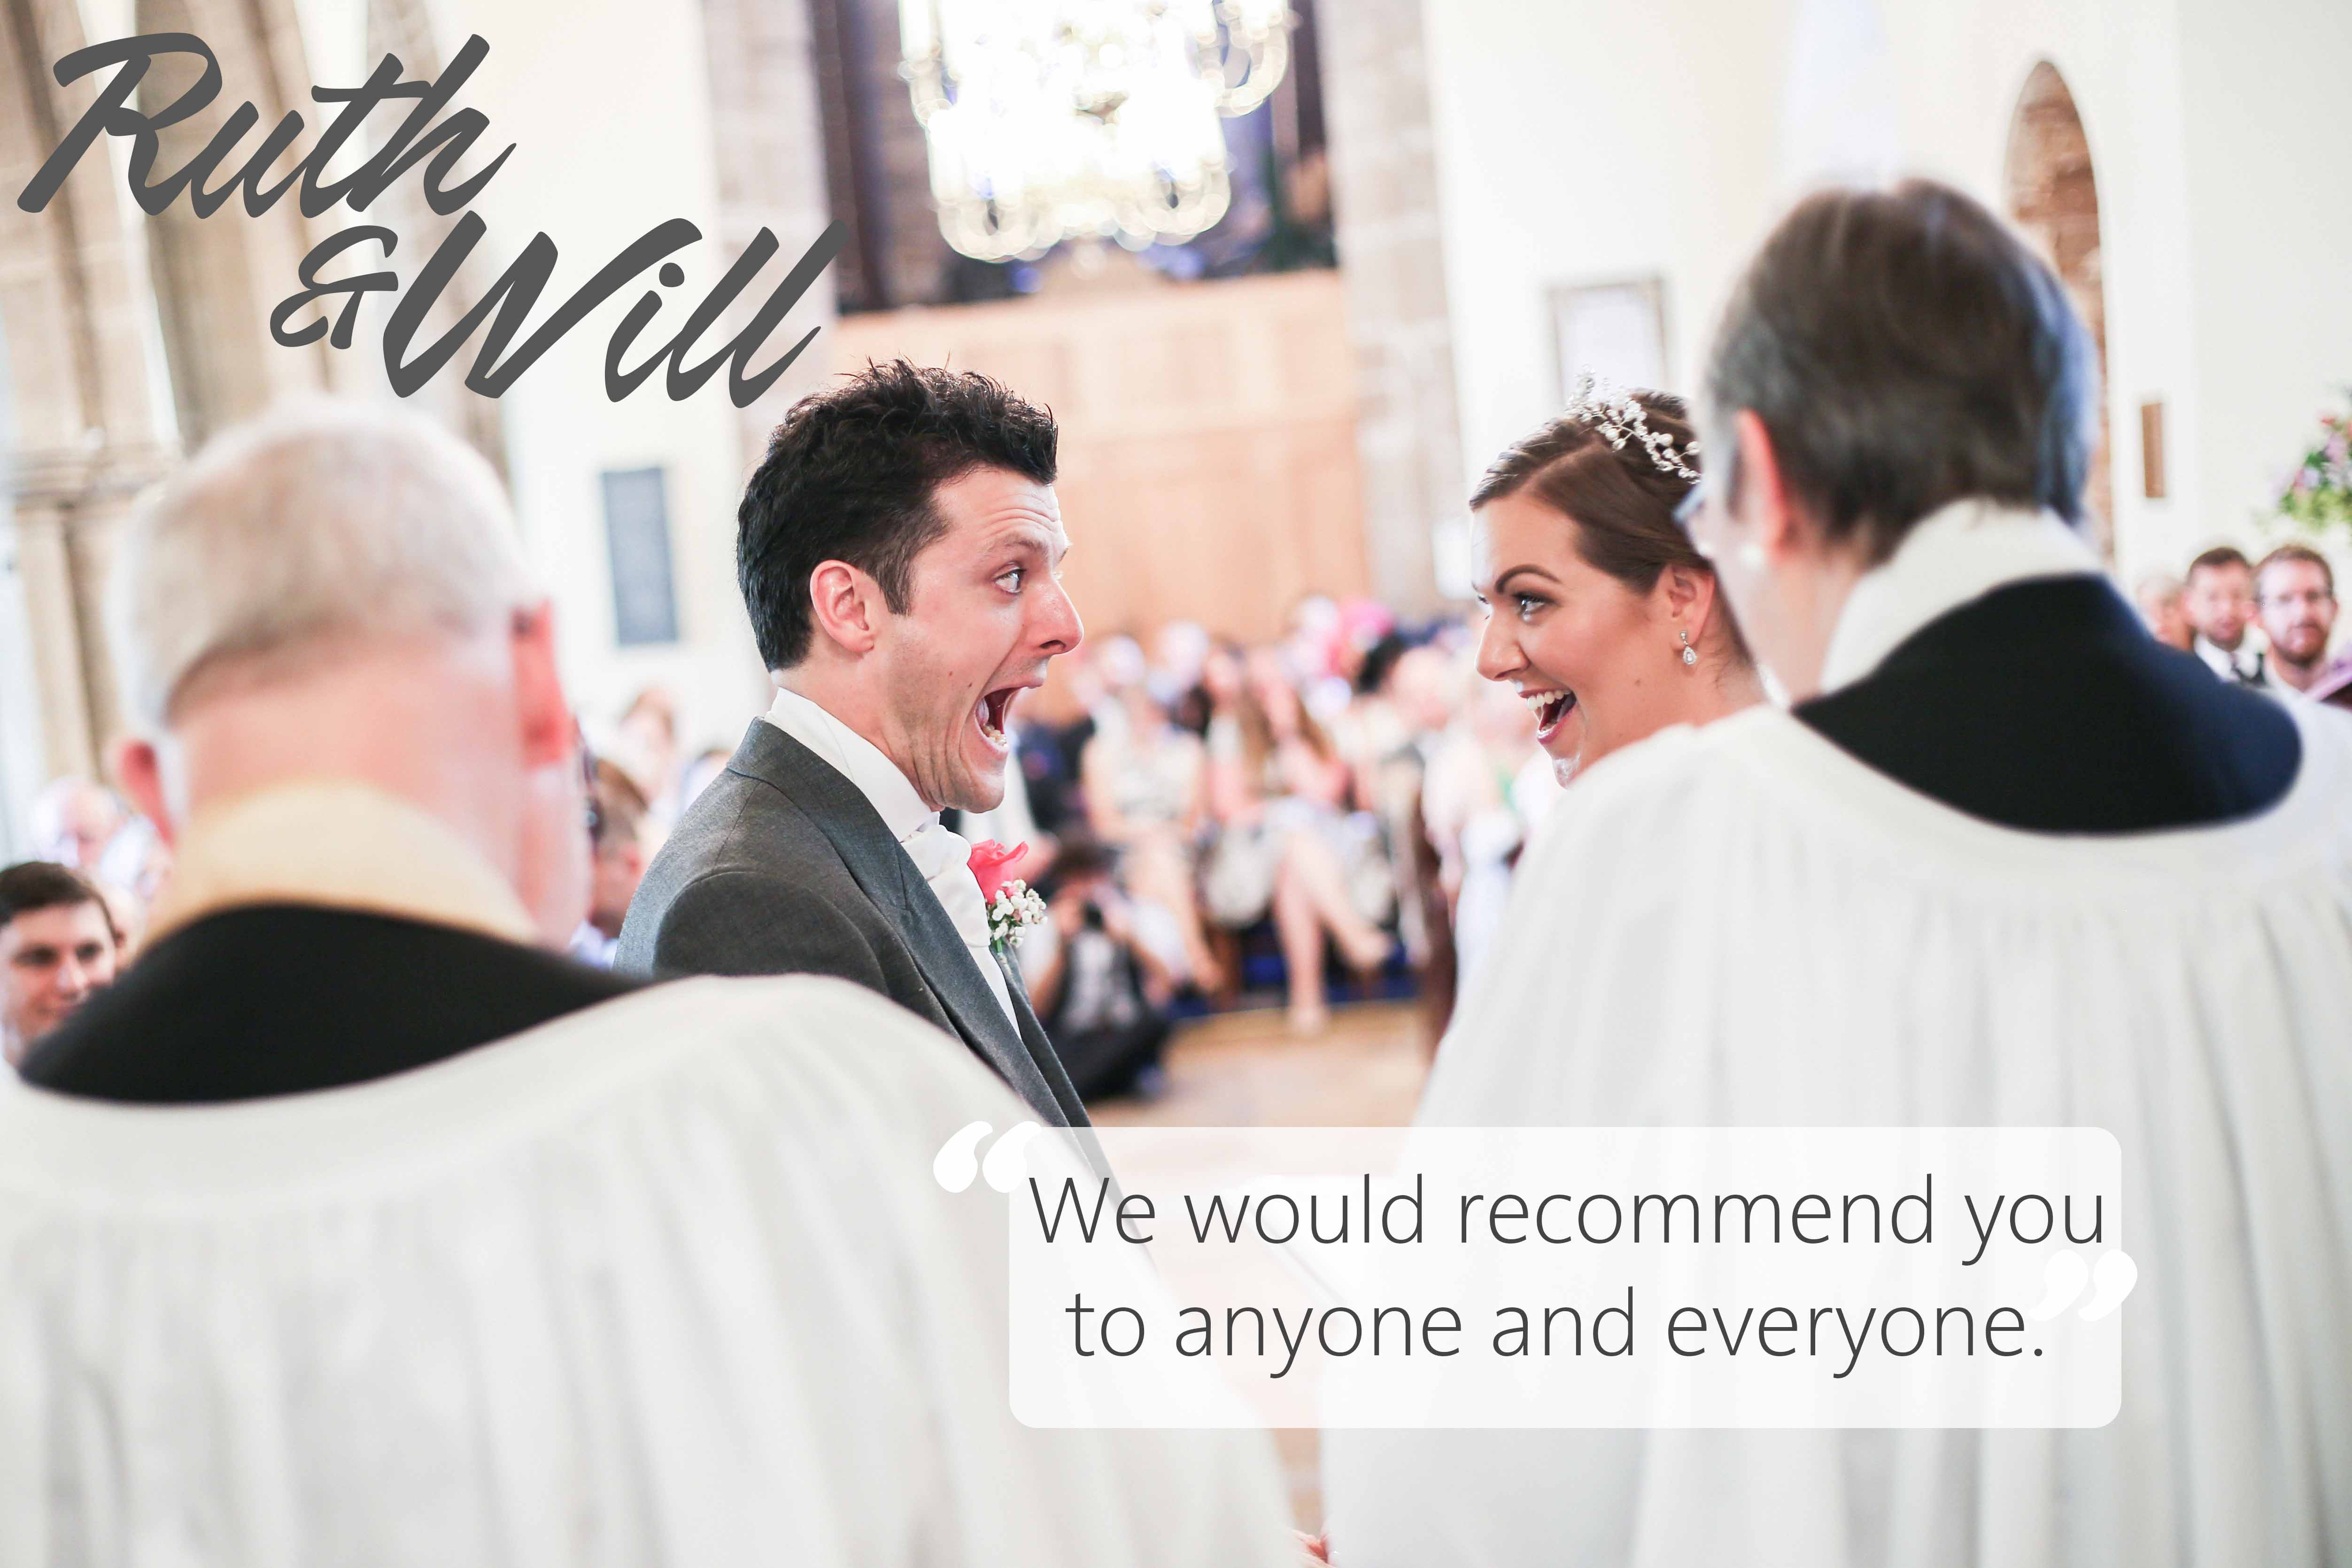 Ruth & Will's wedding photography